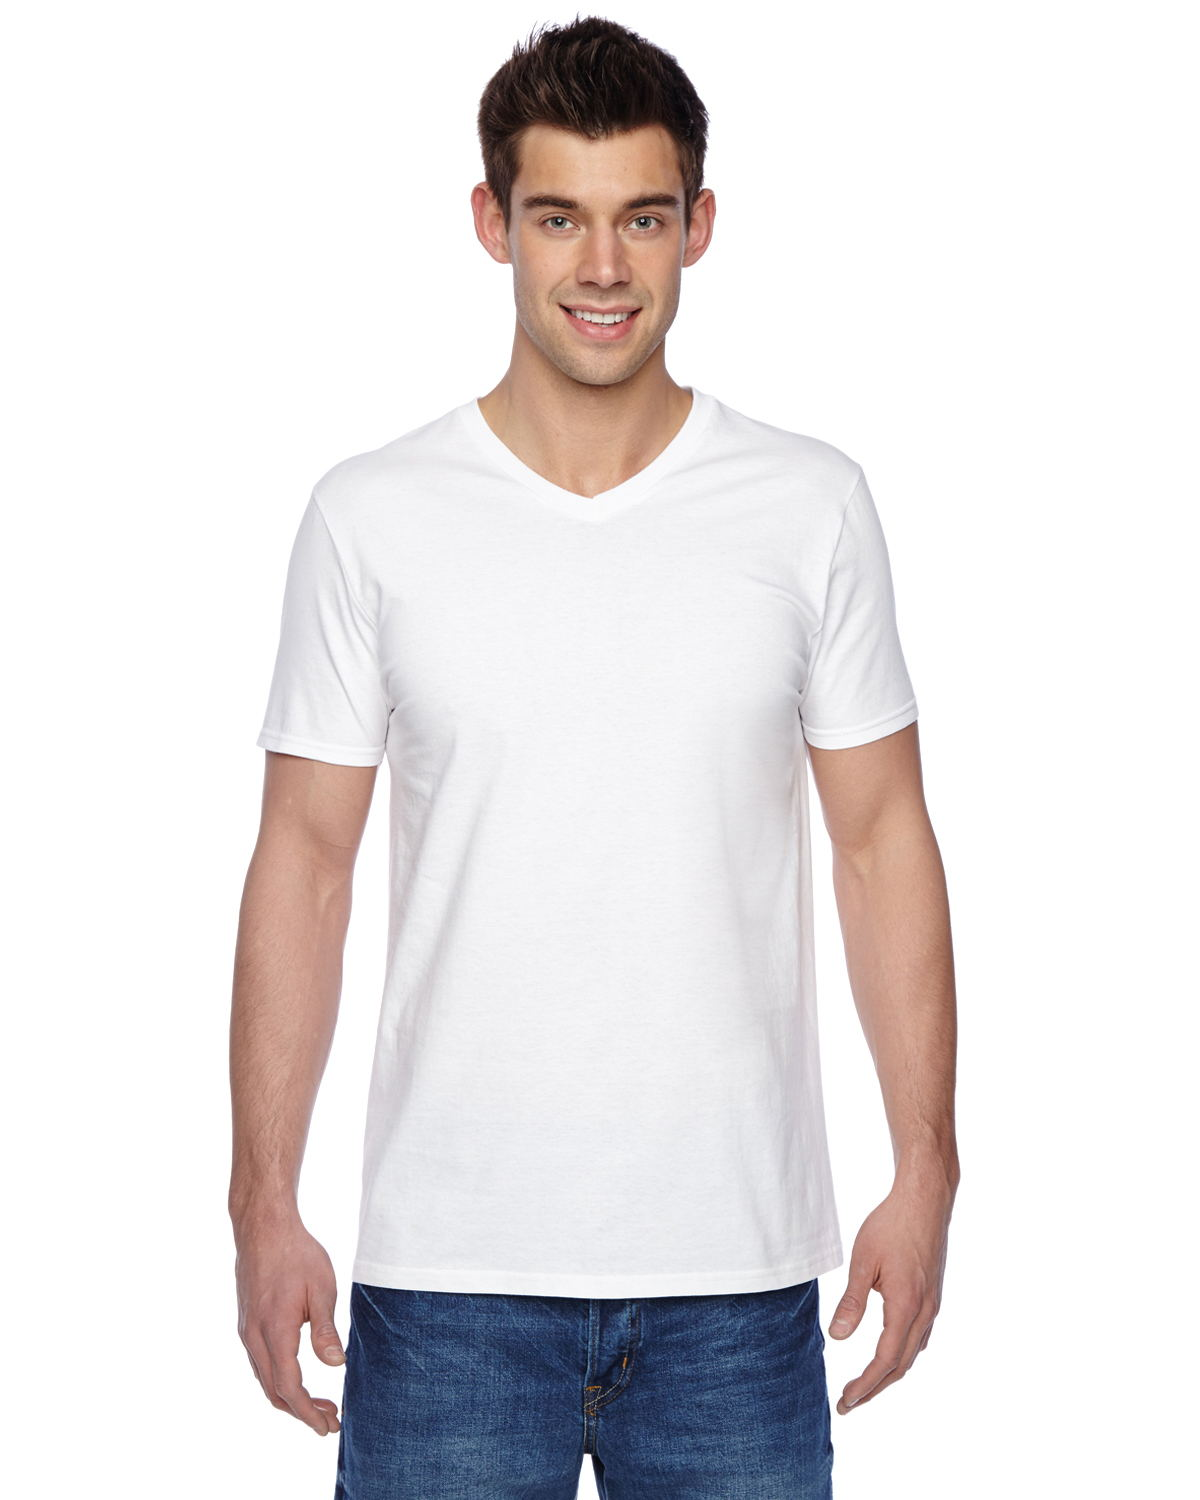 Fruit of the Loom SFVR - 4.7 oz. 100% Sofspun Cotton Jersey V-Neck T-Shirt